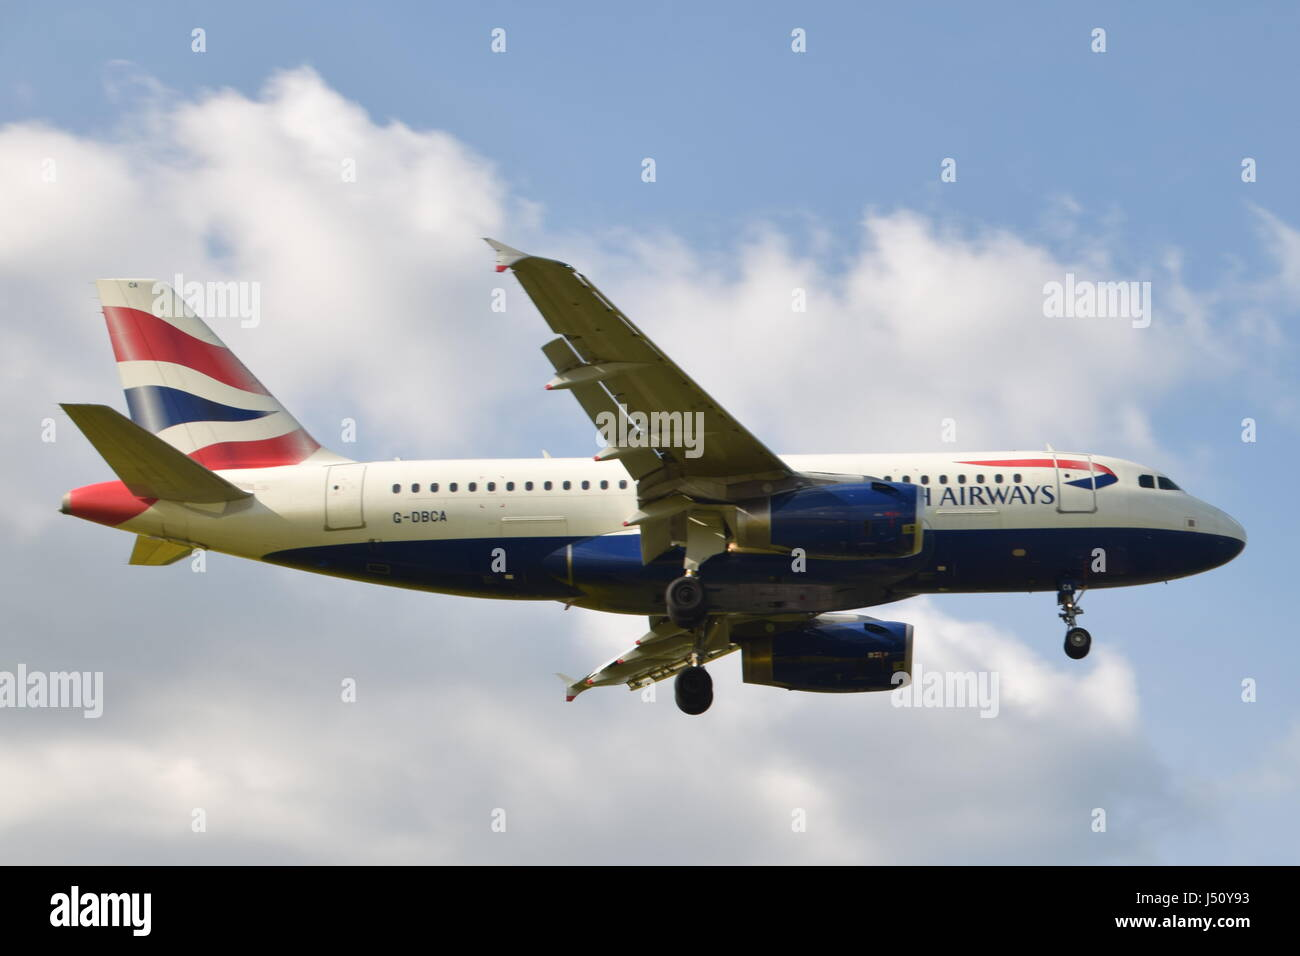 G-DBCA British Airways Airbus A319-100 - cn 2098 on final approach to LGW London Gatwick airport - Stock Image